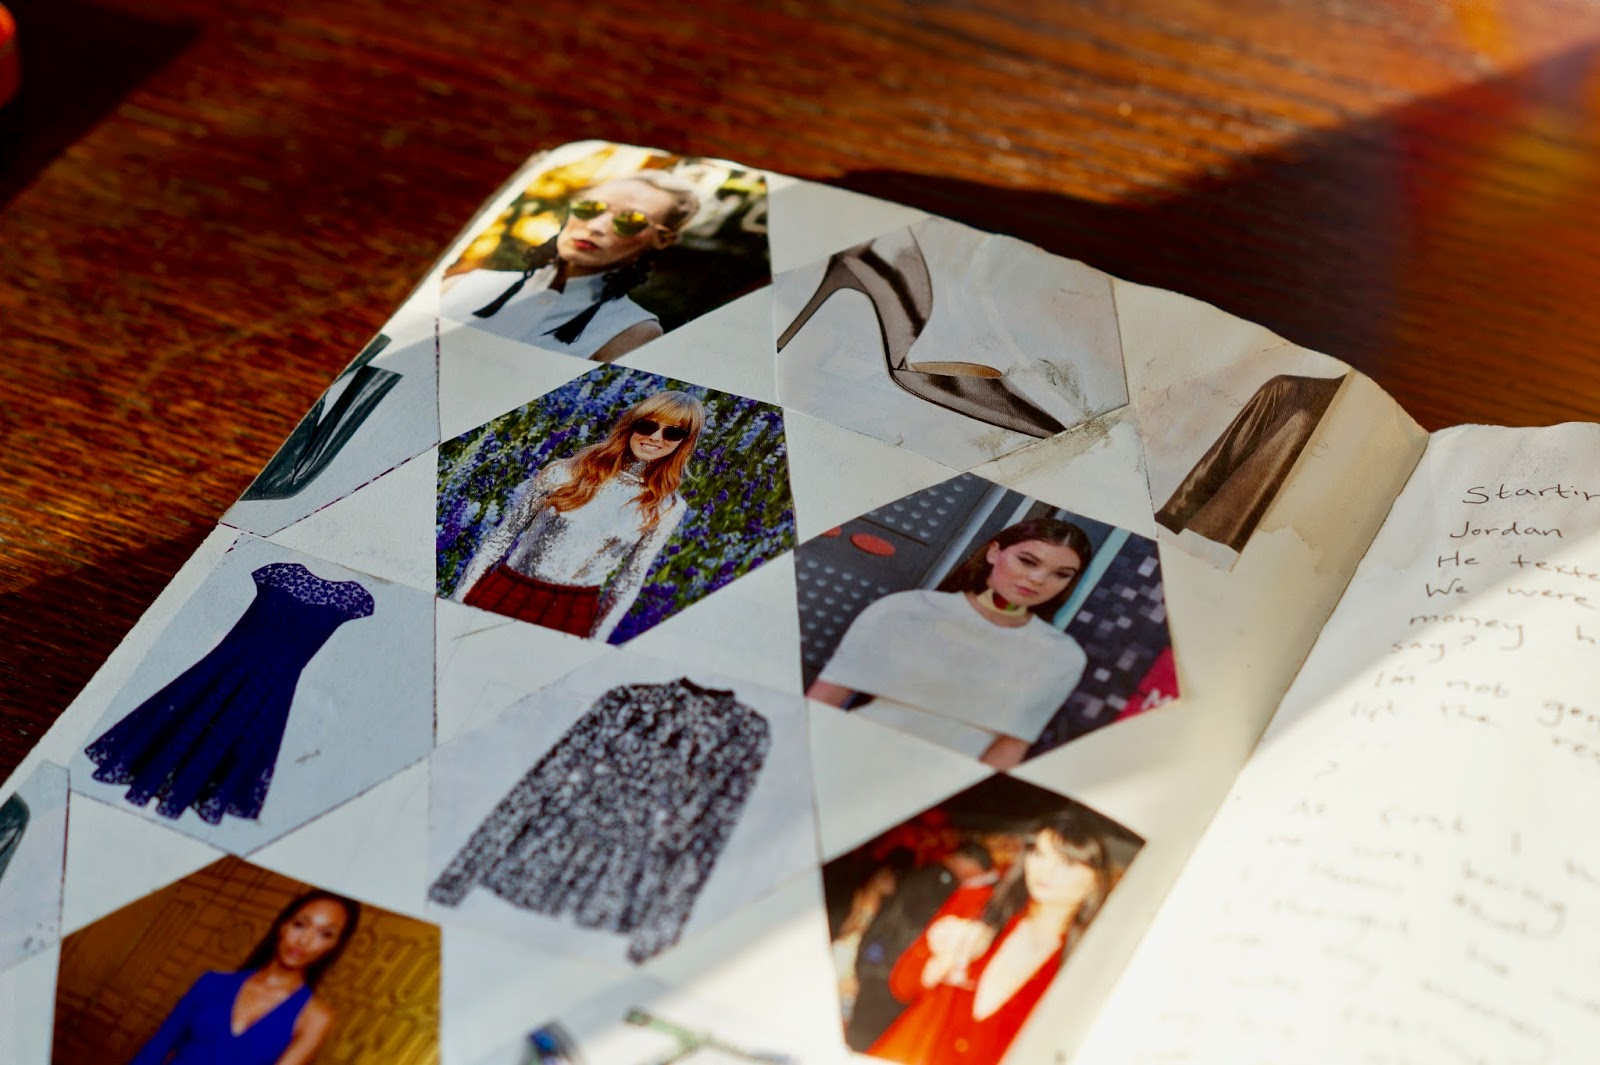 fashion snippets in a journal